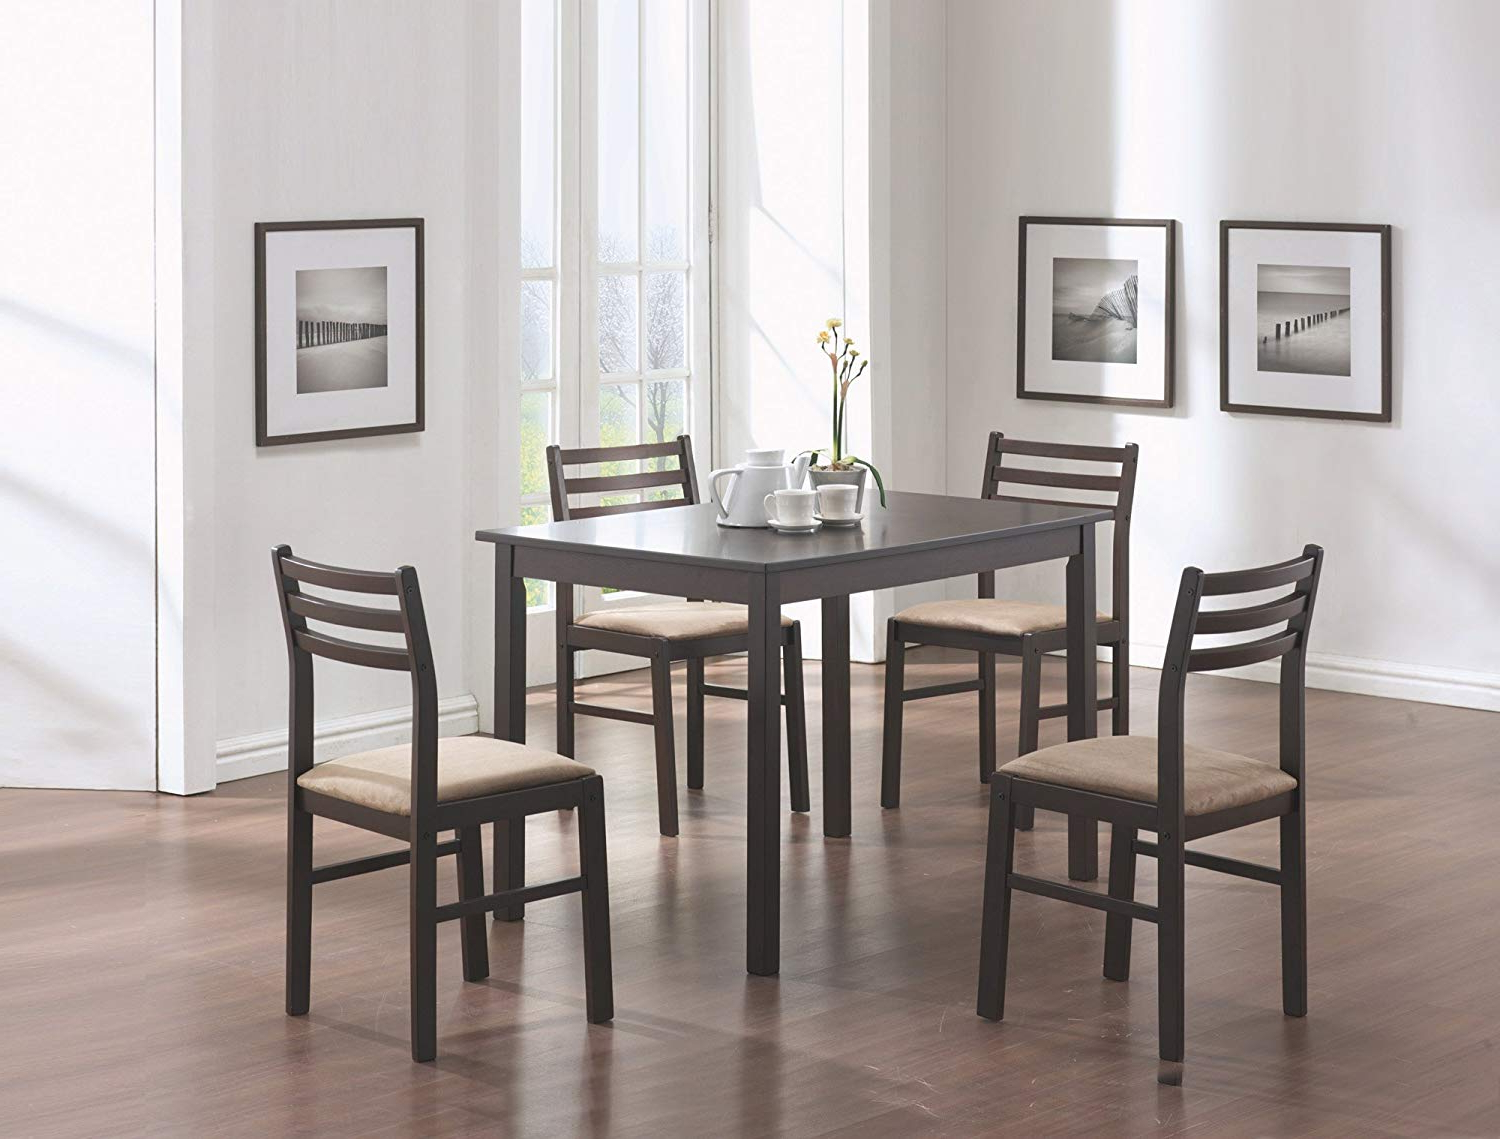 Best And Newest Amazon – 5 Pieces Cappuccino Wood Veneer Dining Set Pertaining To Cappuccino Finish Wood Classic Casual Dining Tables (View 4 of 30)